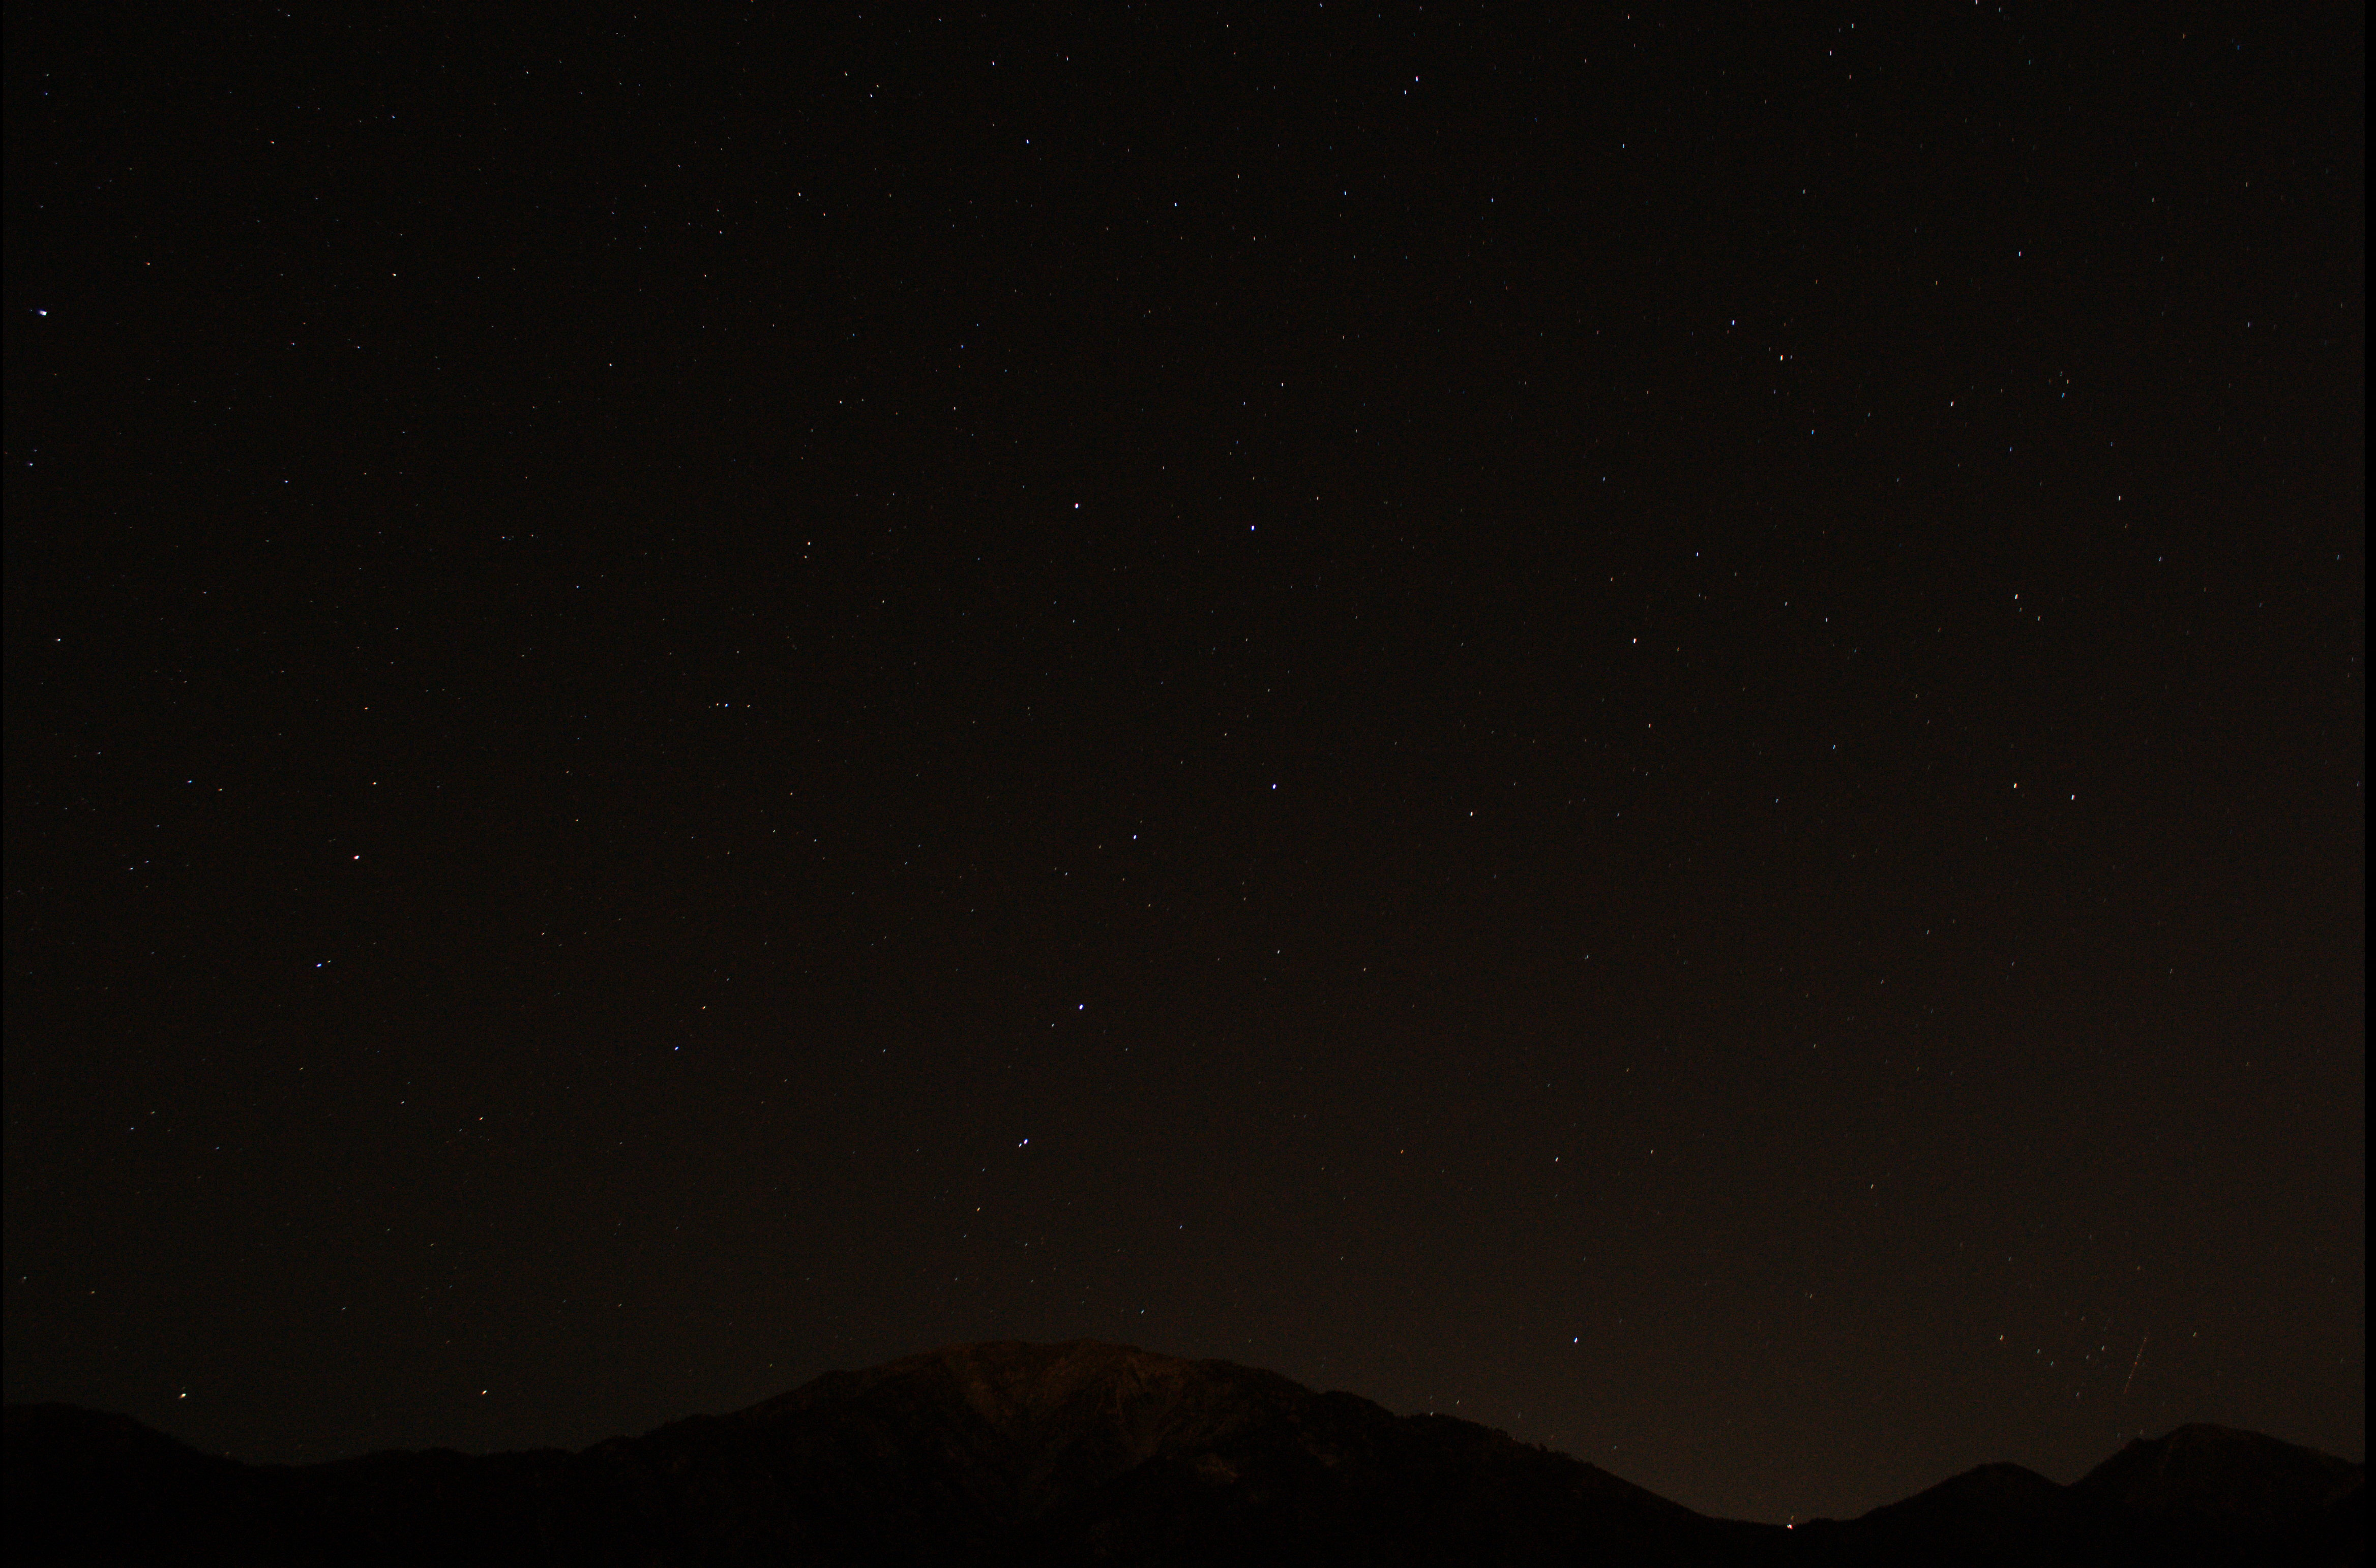 Same Geminid shot but from the raw file